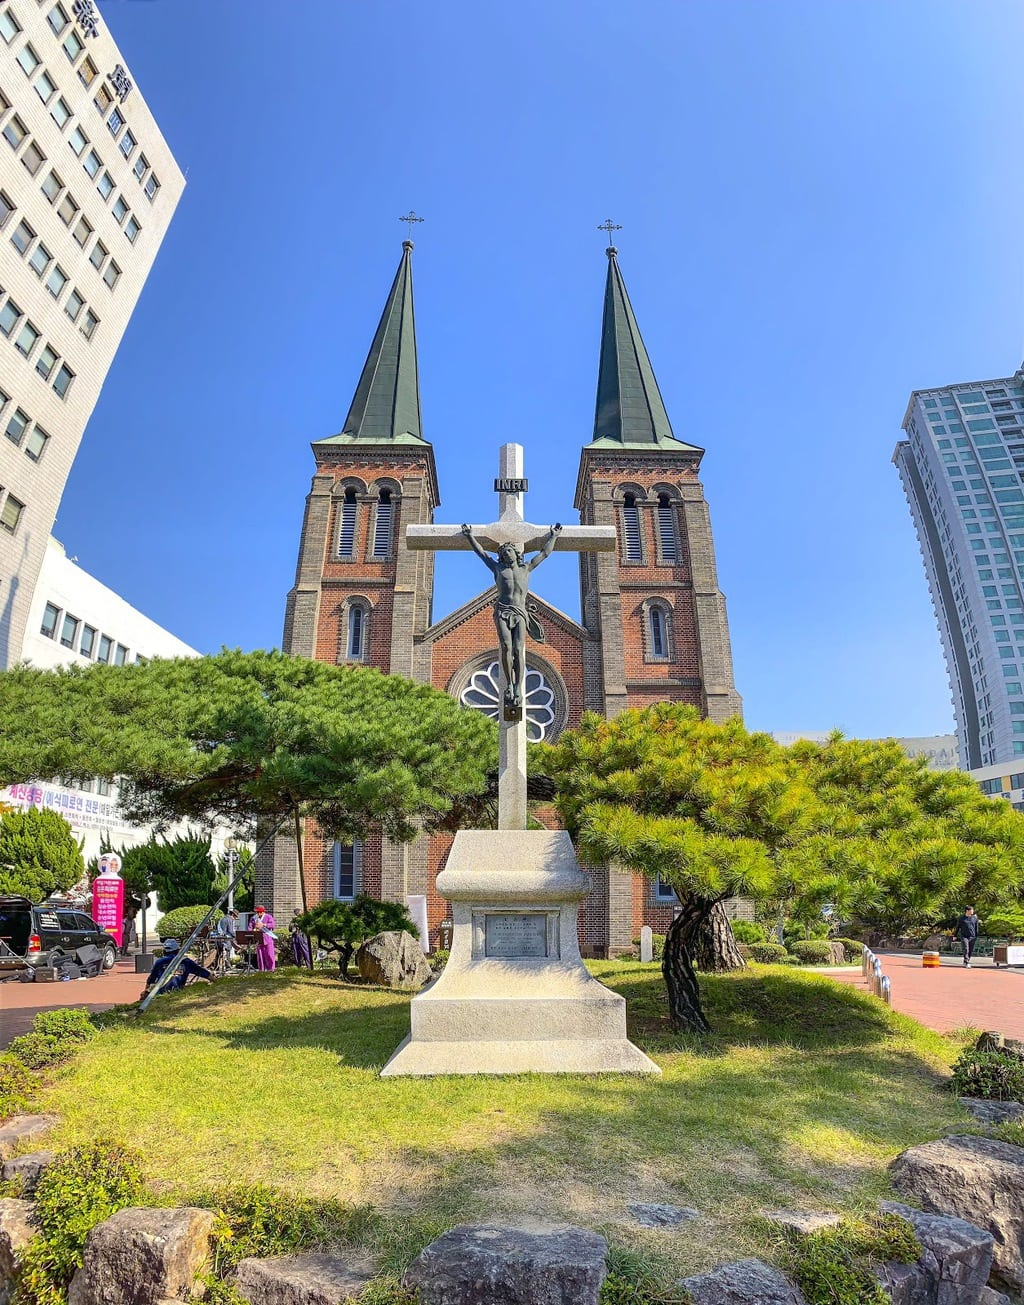 Gyesan Church